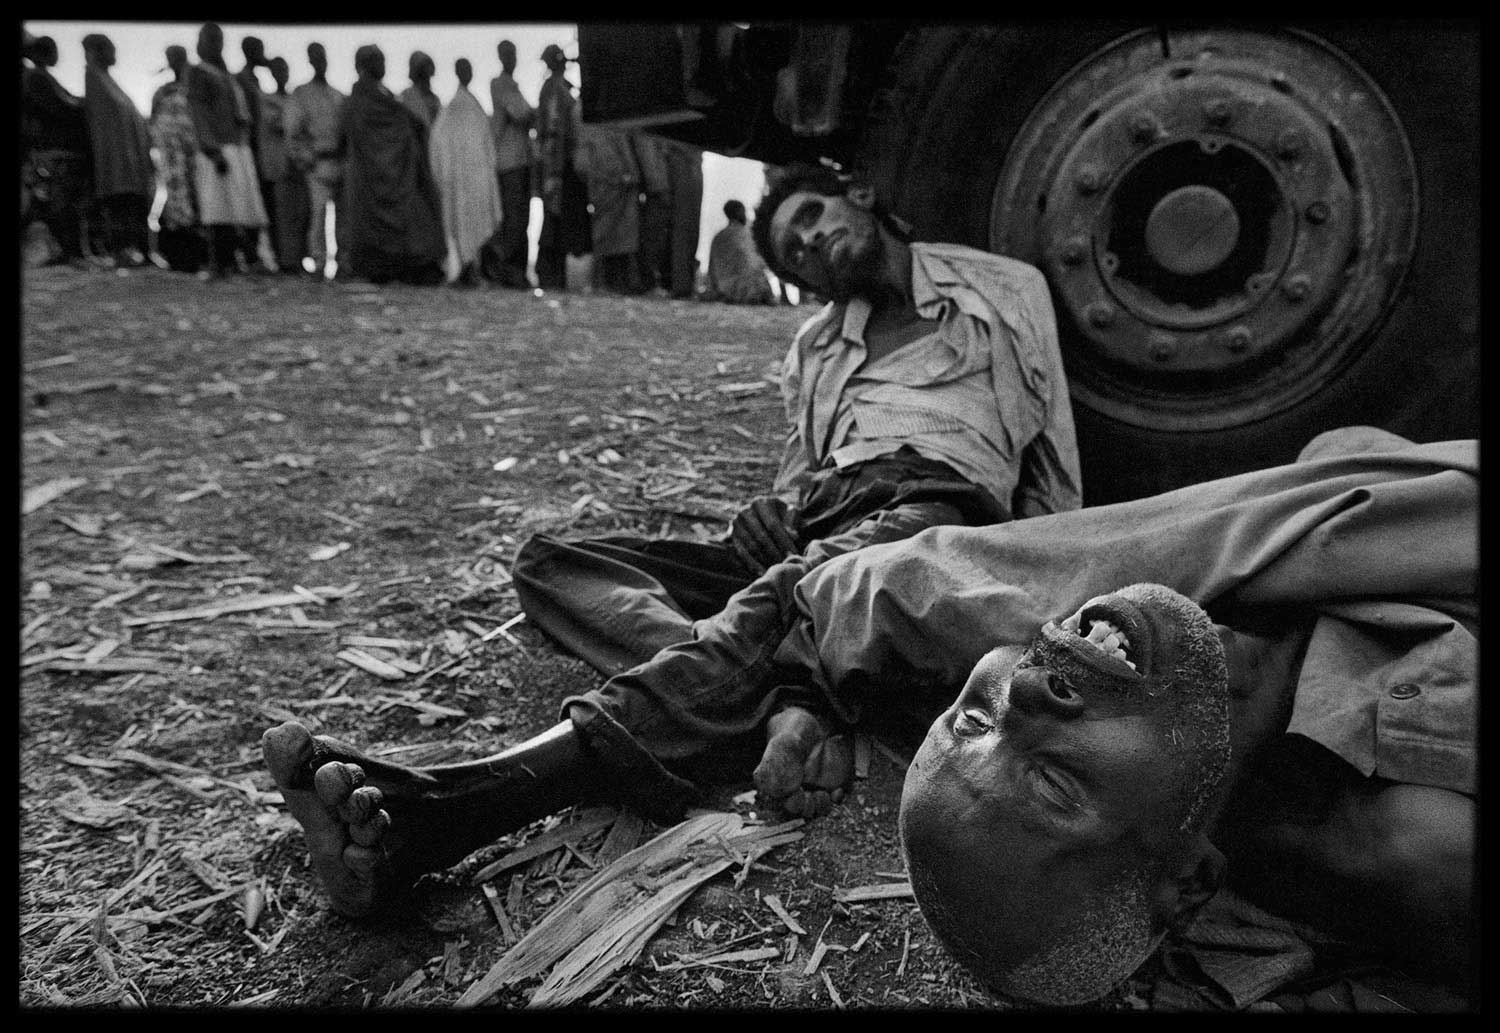 Refugees lined up to receive medical assistance in Zaire. Some died while they waited, Zaire, 1994.